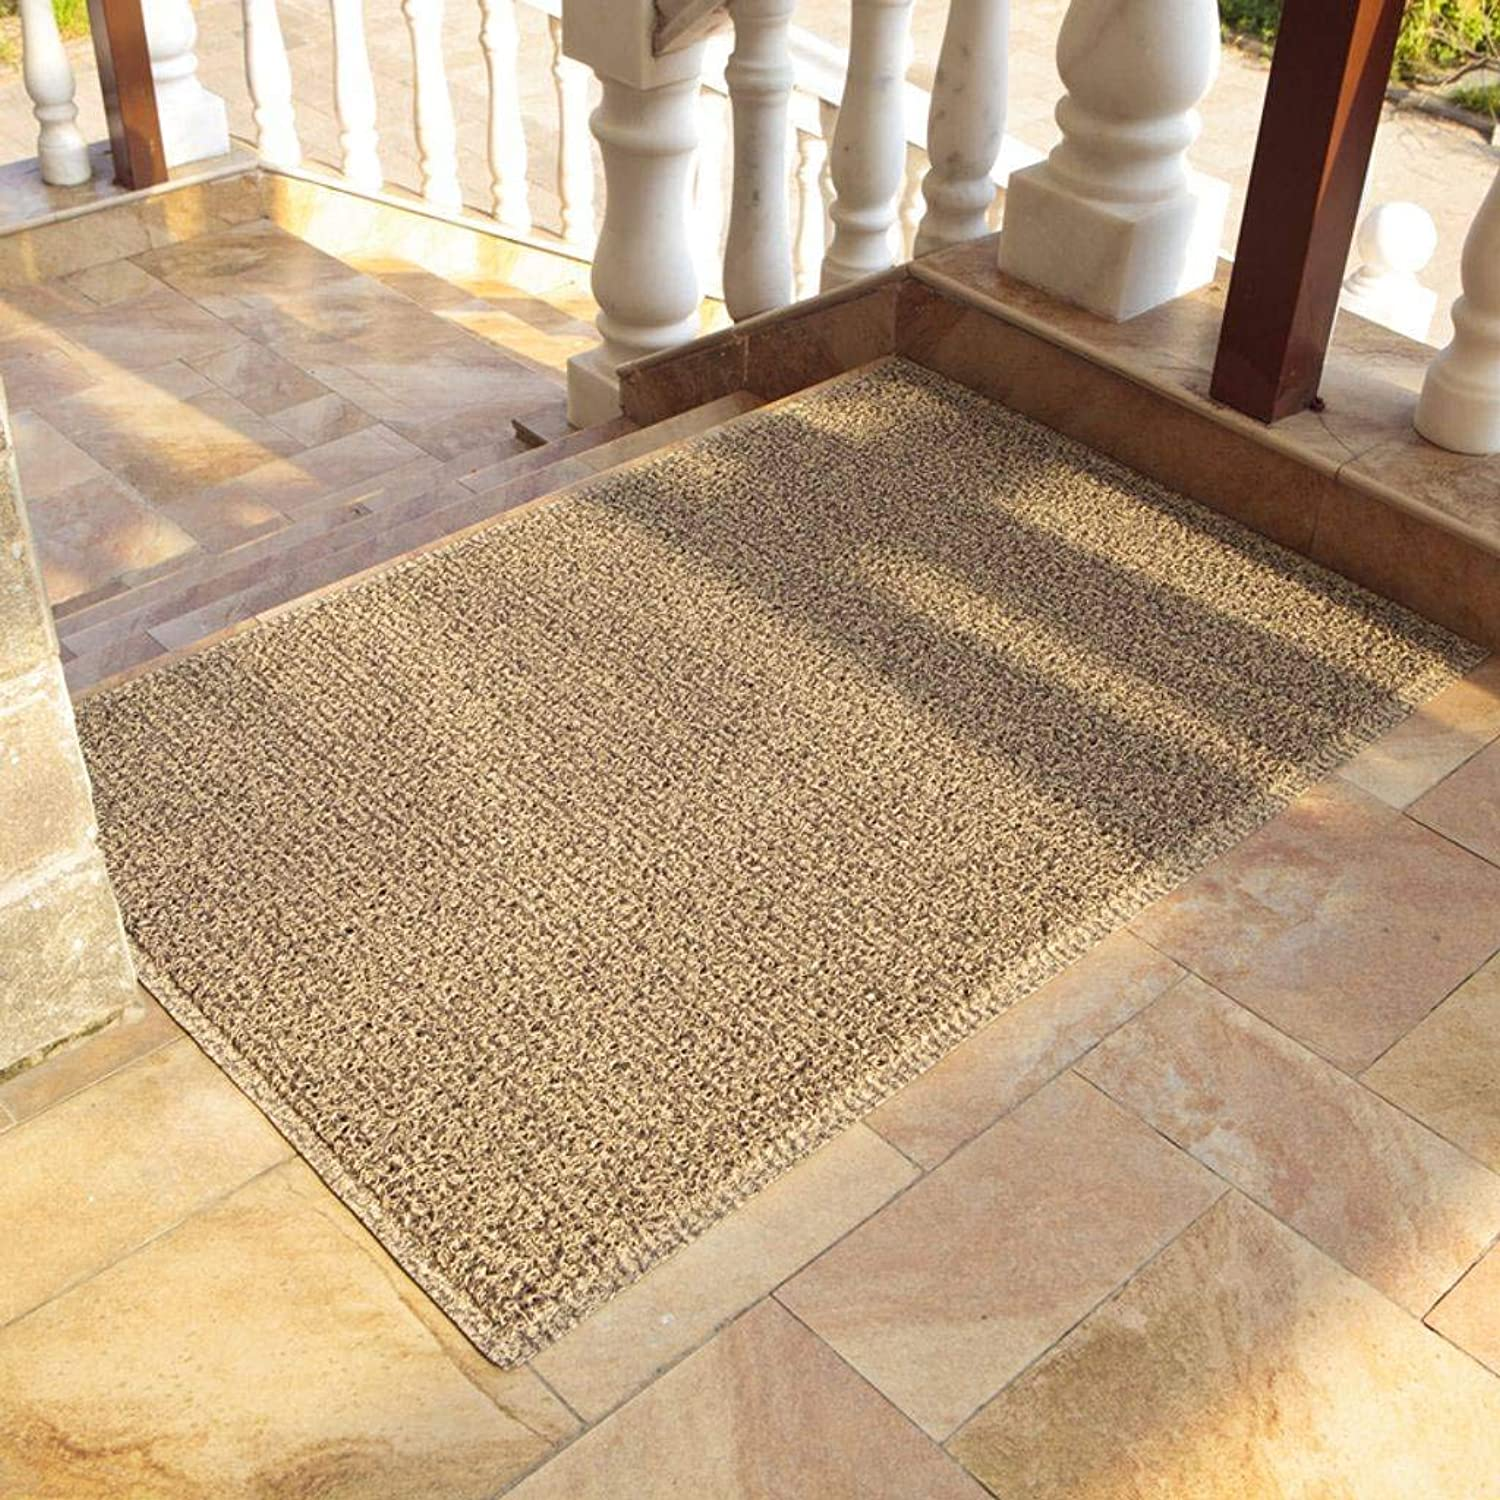 Premium Doormat, Indoor Outdoor PVC Backing Non-Slip Durable Washable Dust Pad Suitable for Front and Rear Doors, Kitchens, Hallways, Patios and Garages-Cream color-60x120Cm(24x47Inch)